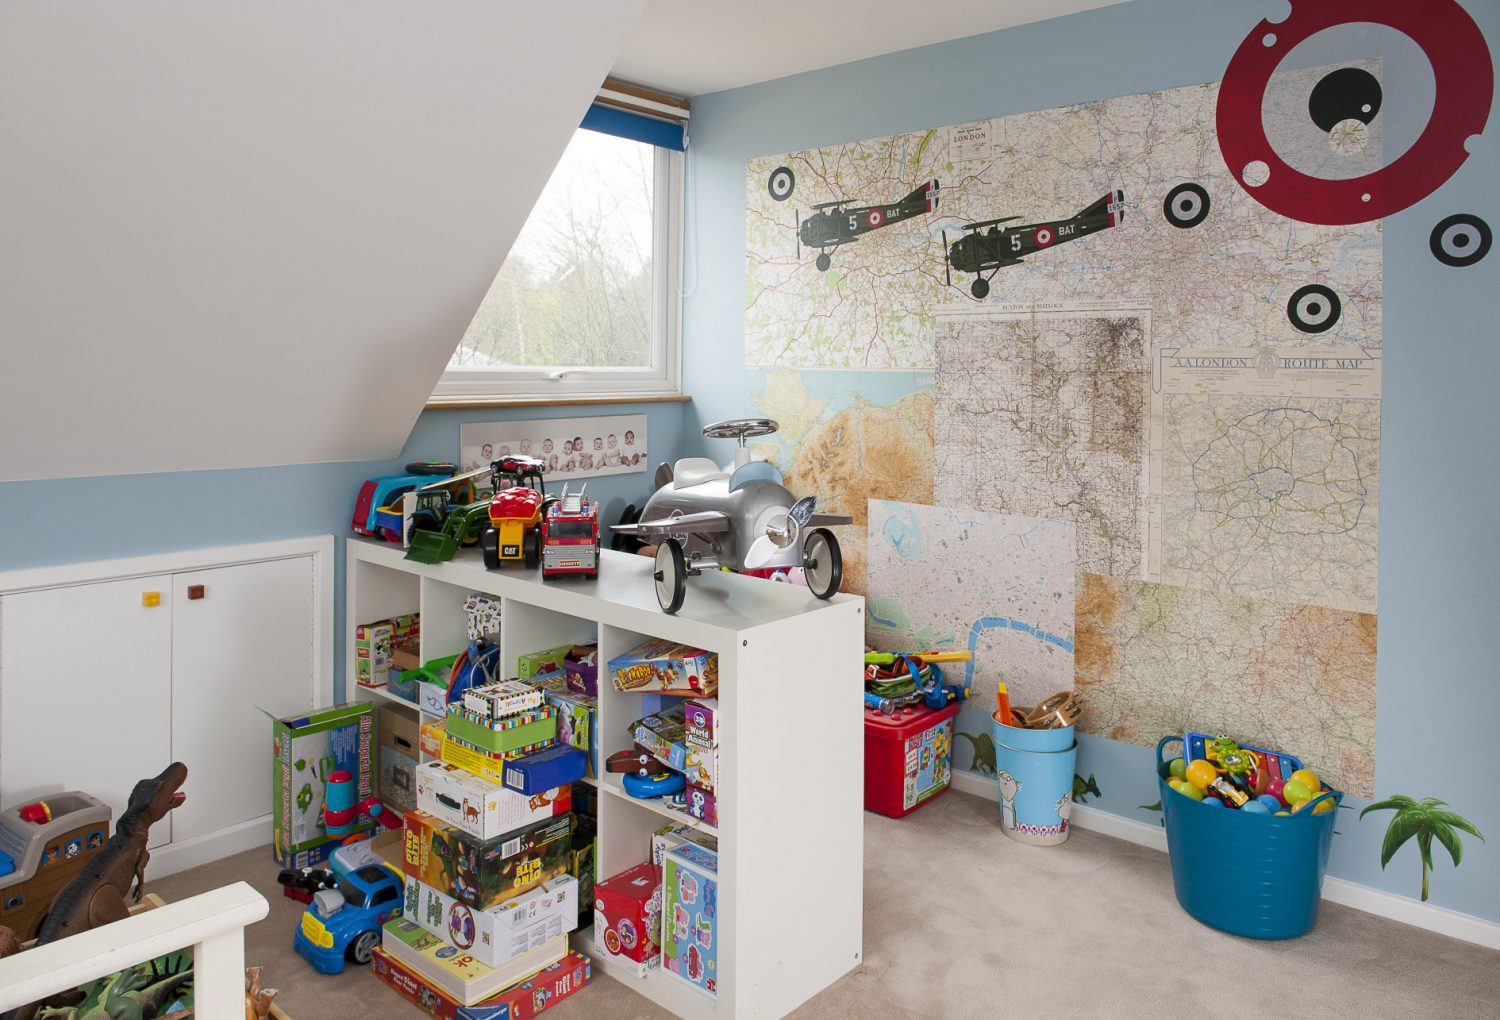 Son William's room features a wall that's papered in old maps, sourced by Sandra from antiques shops and fairs